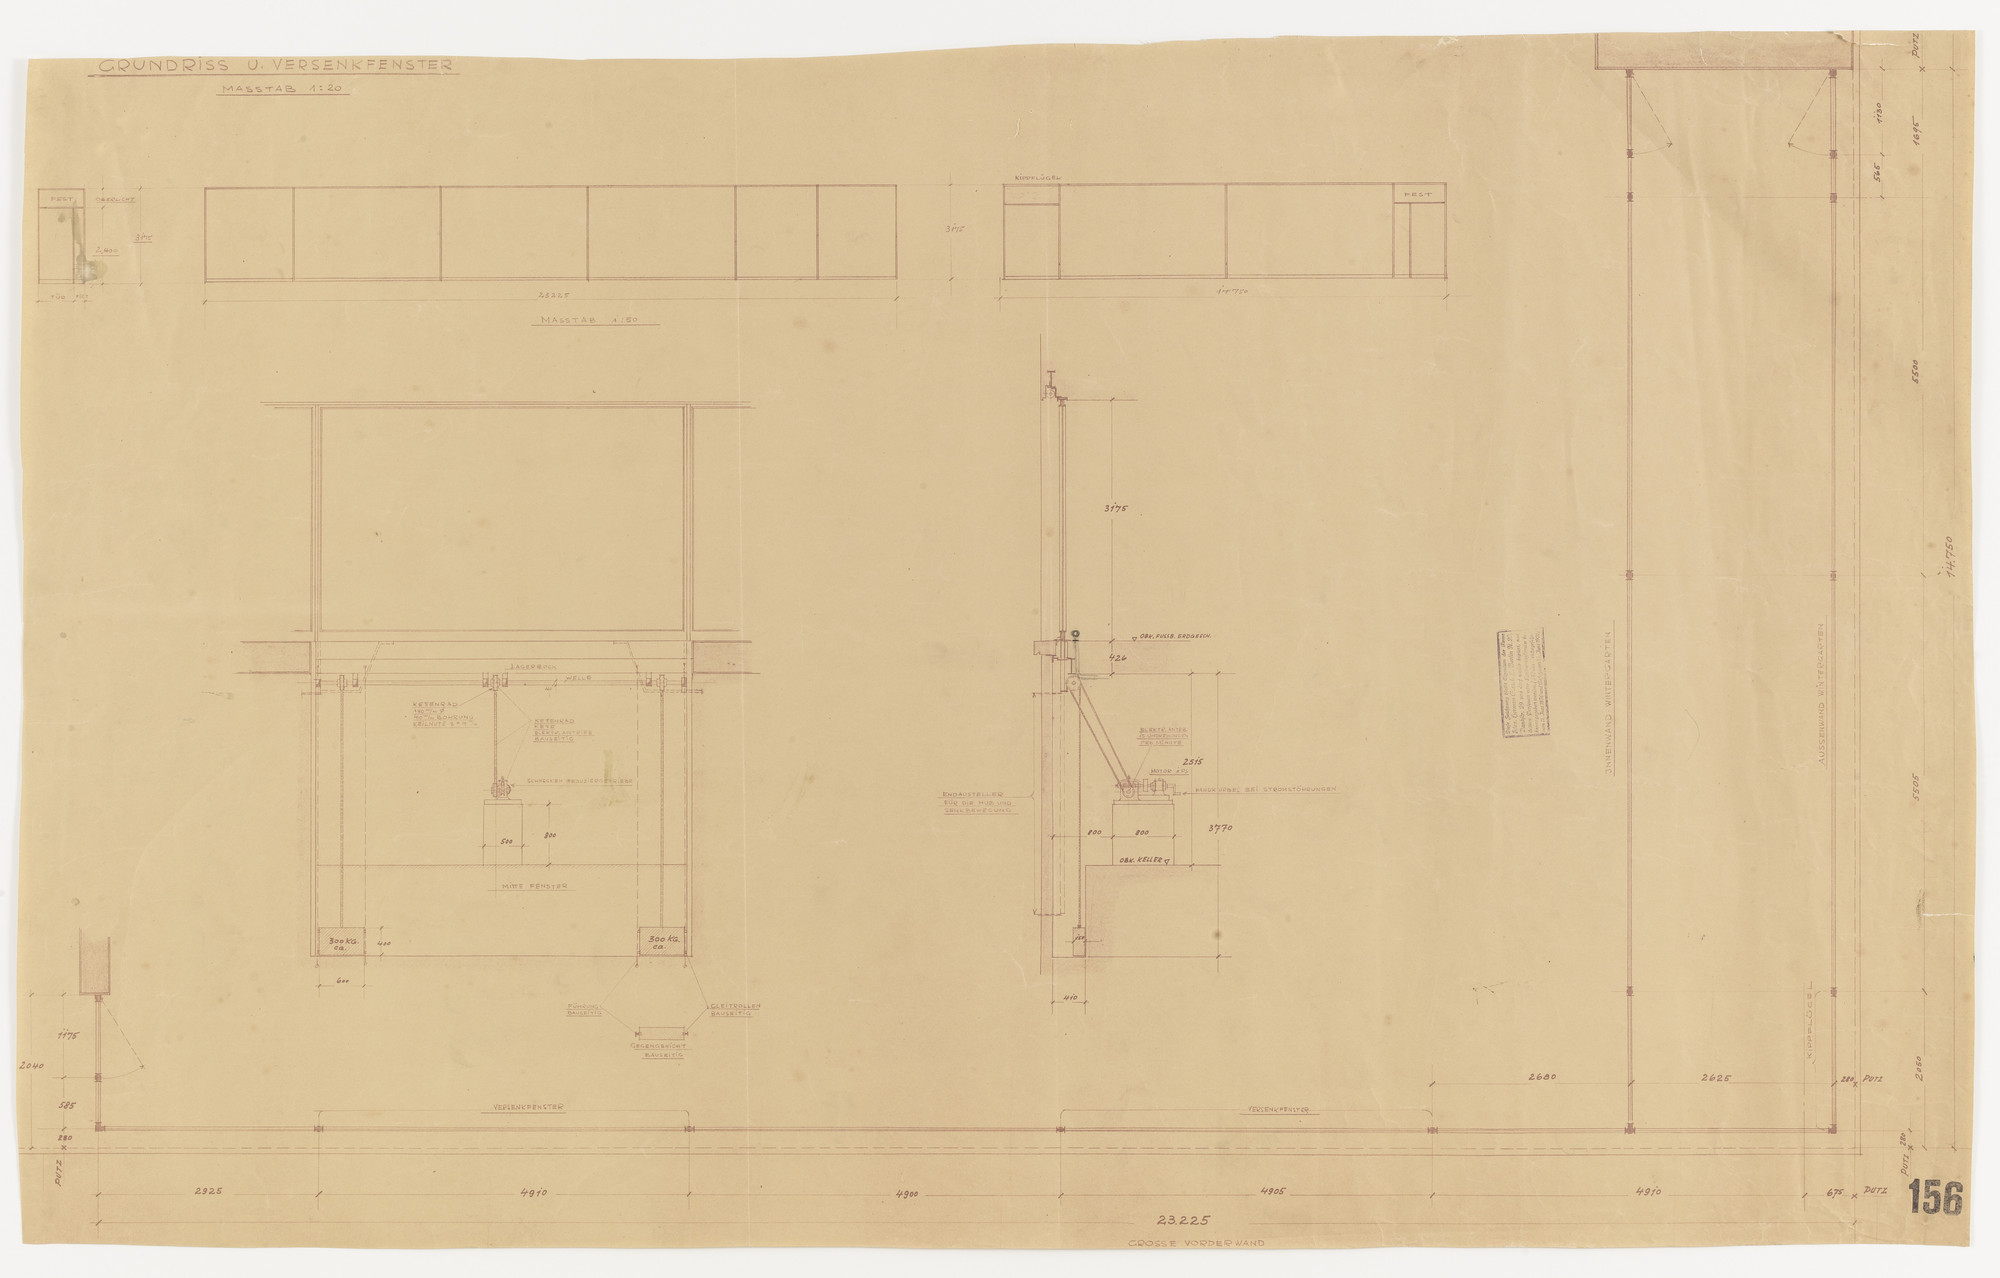 Ludwig Mies van der Rohe. Tugendhat House, Brno, Czech Republic, Plan, three elevations, section. 1928-1930